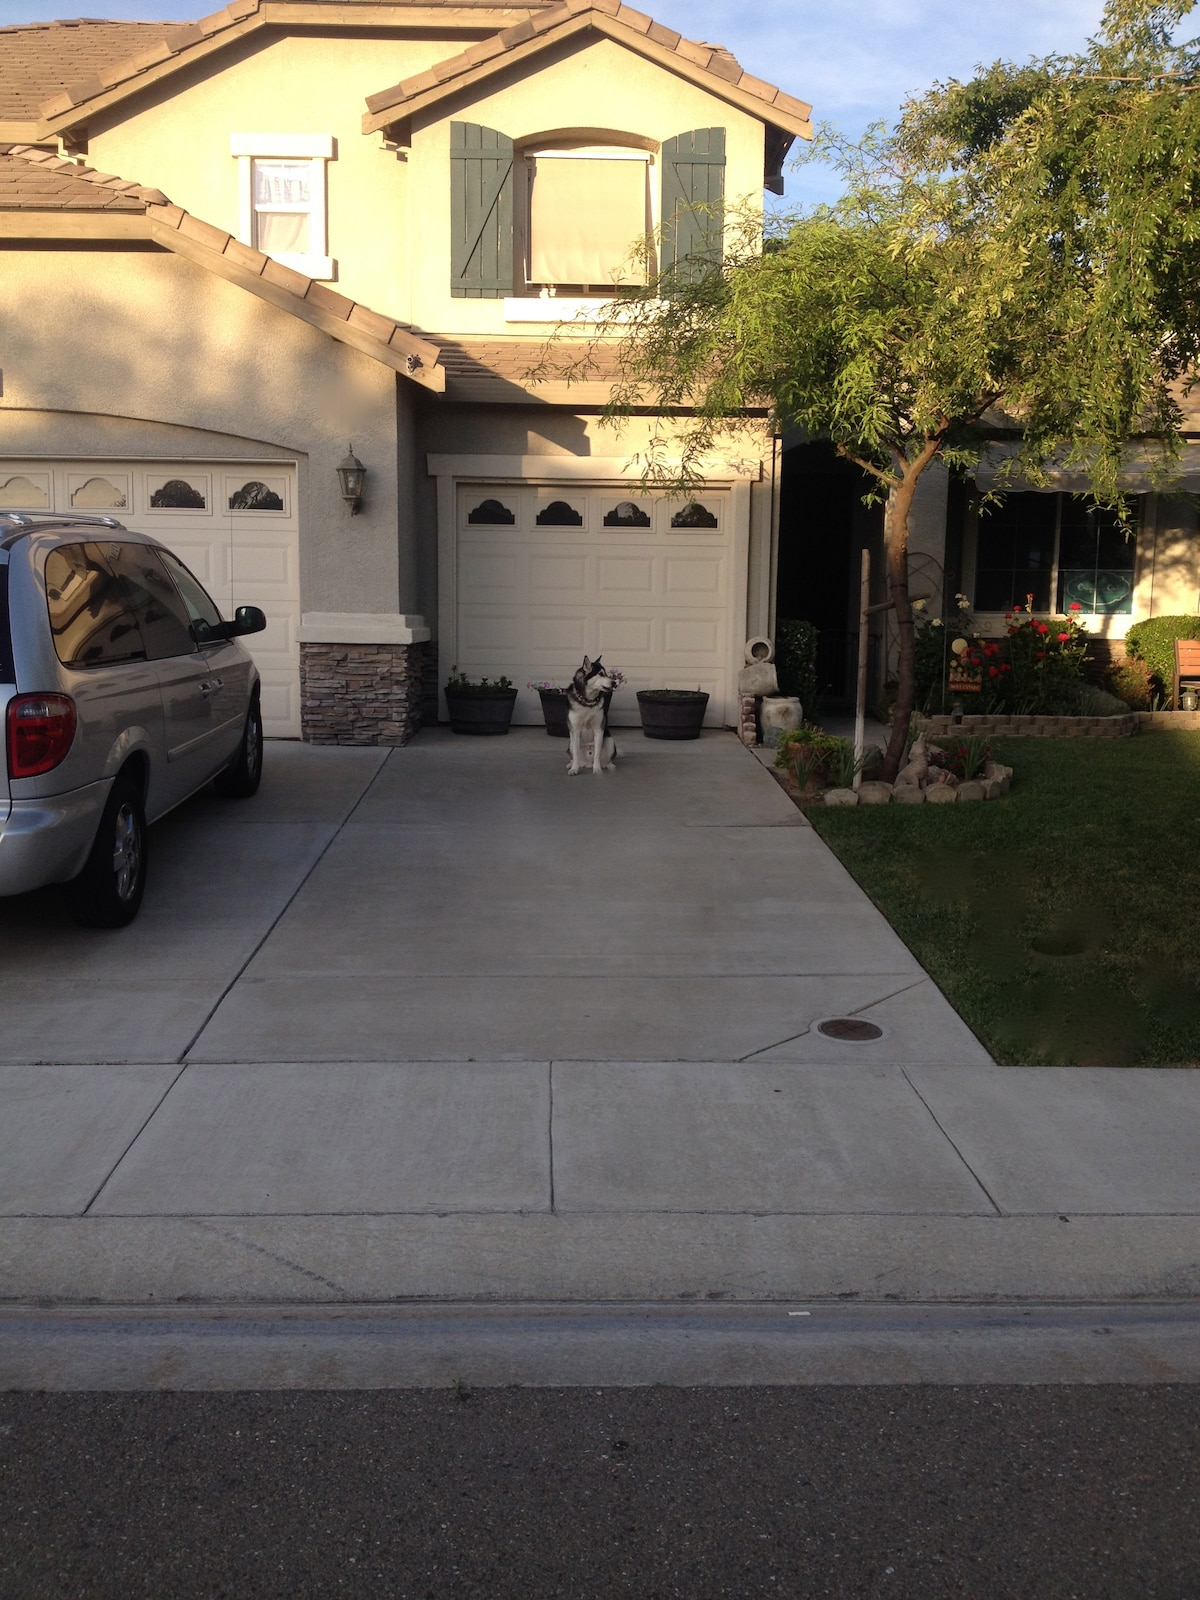 Here is your parking space. See Koda waiting.